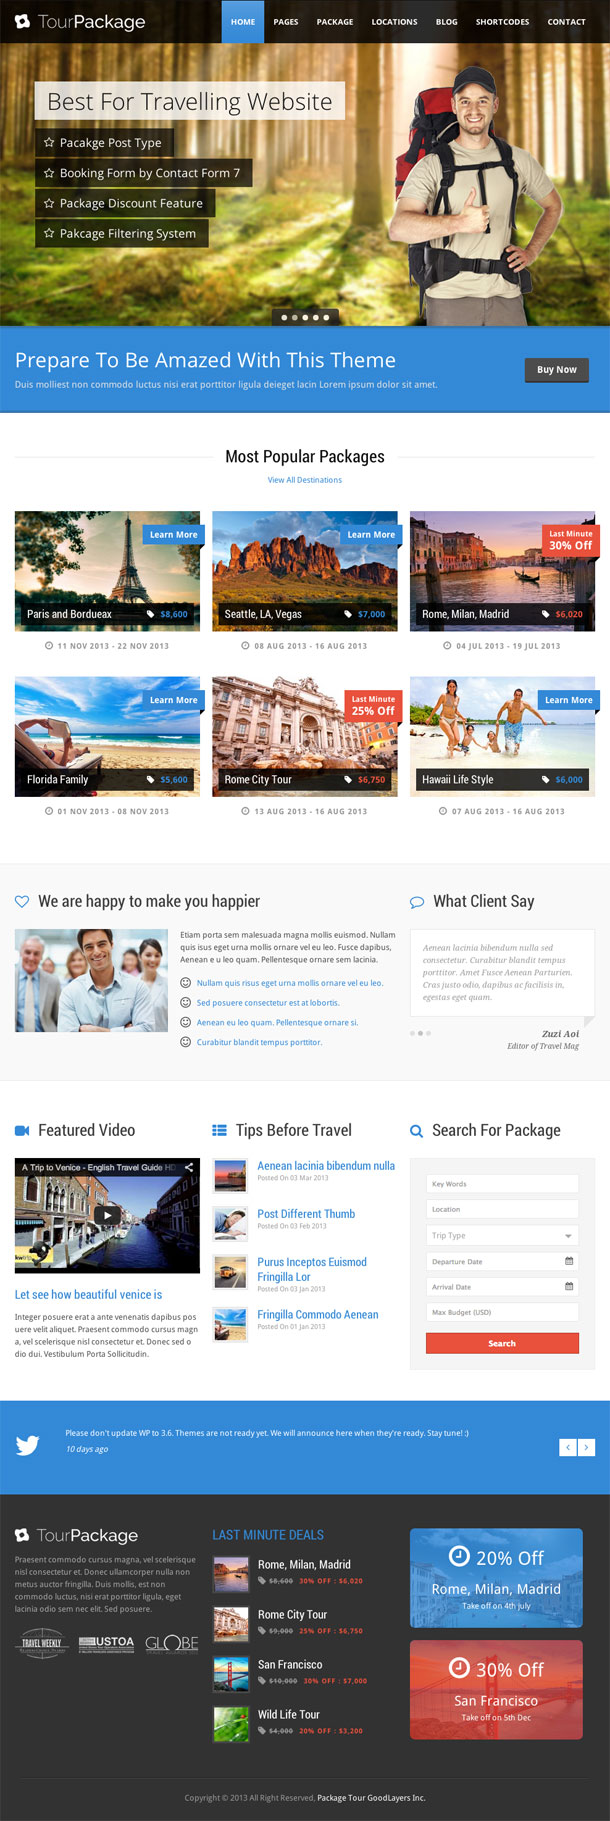 Tour Package Retina Theme Image